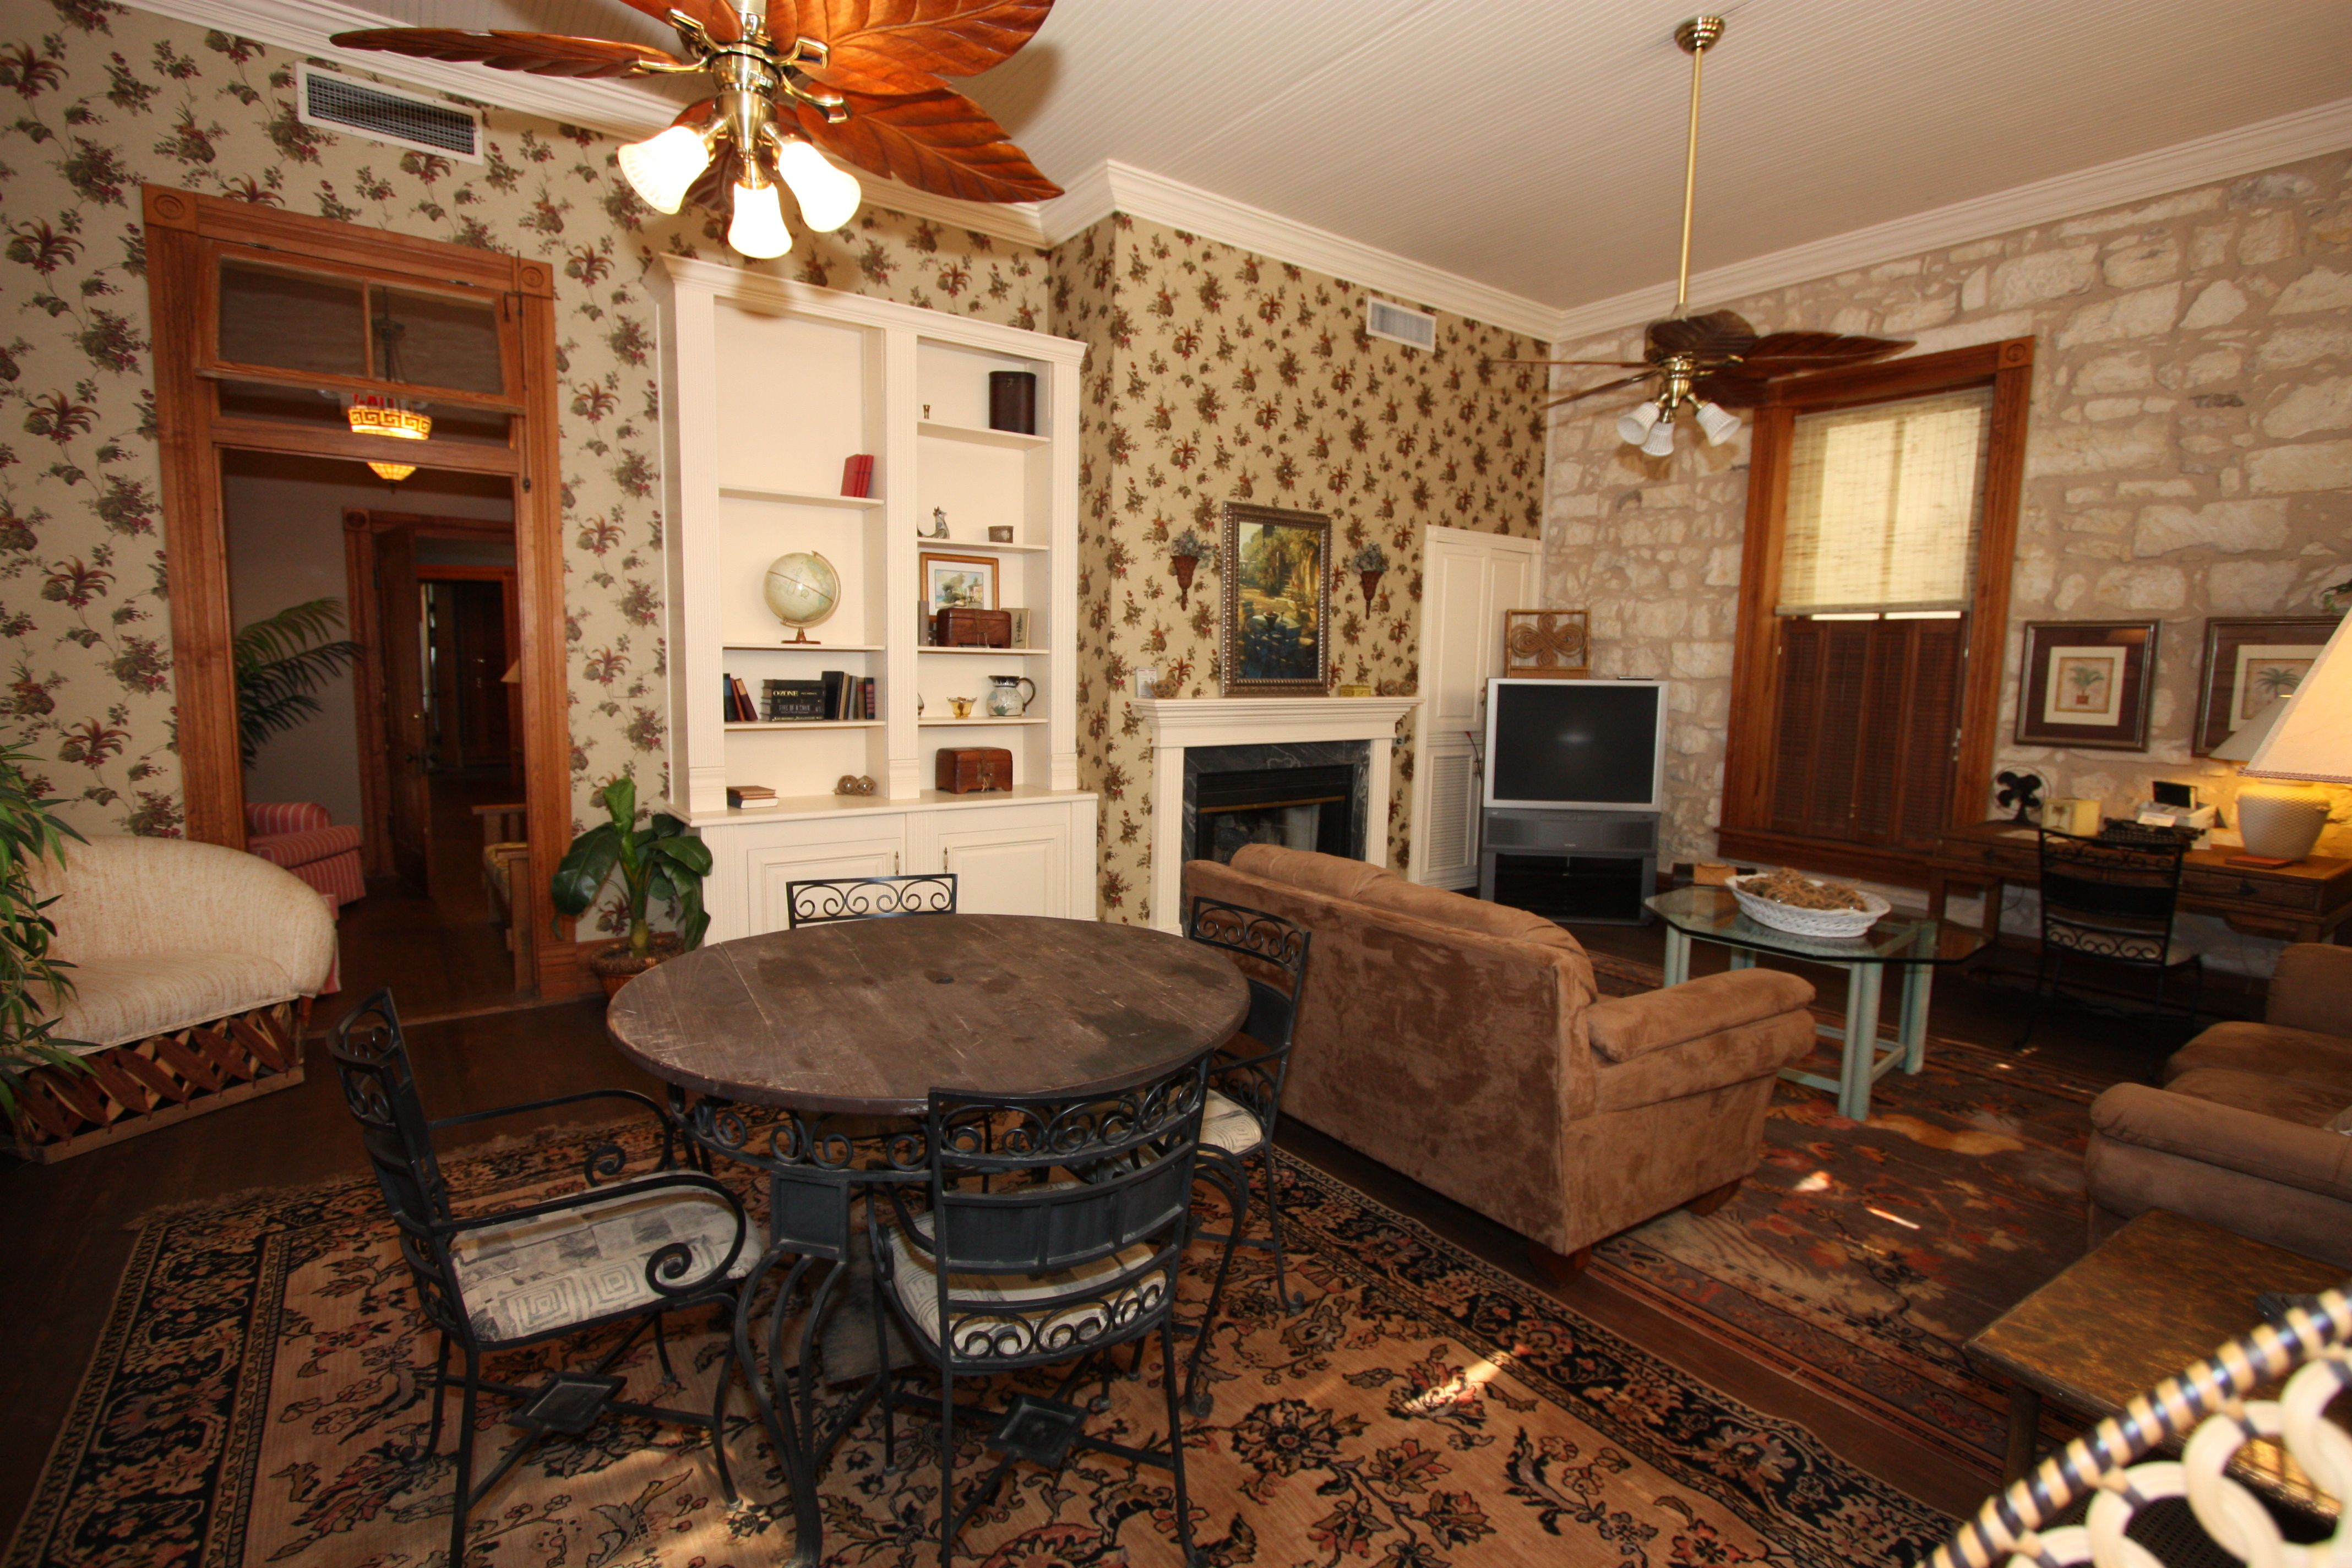 Fredericksburg, Texas Bed and Breakfast, Lodging in